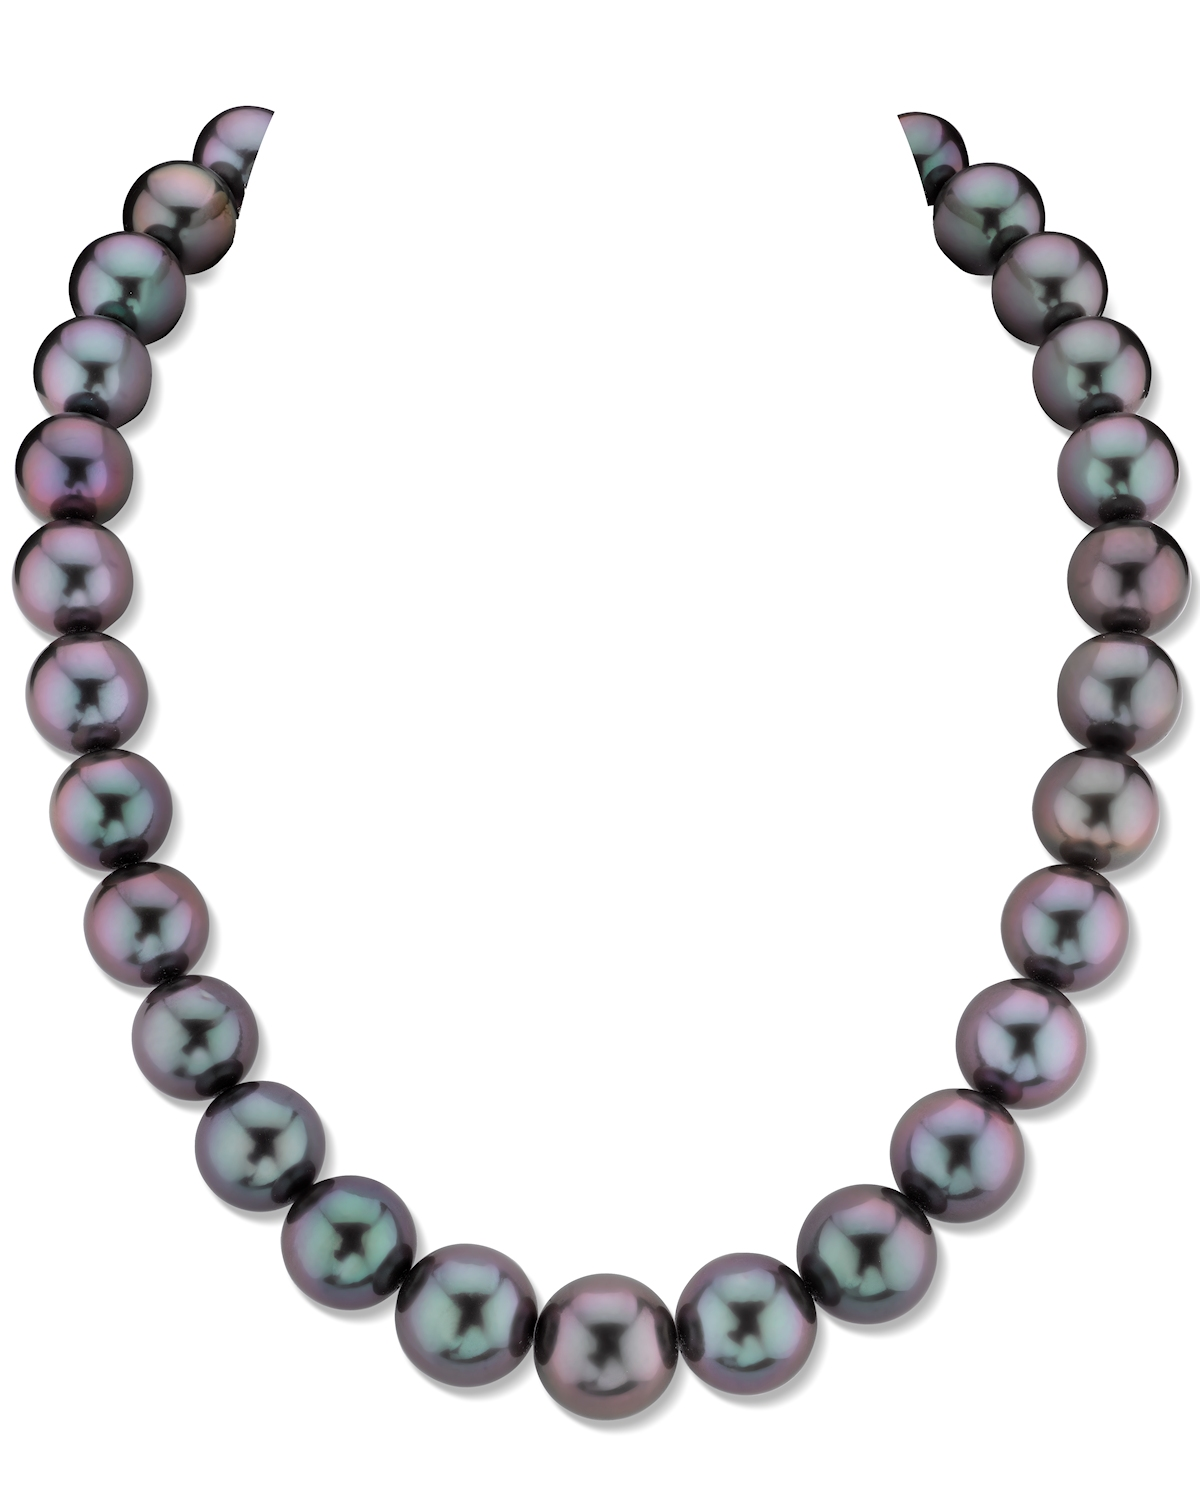 12-14mm Purple Eggplant Tahitian South Sea Pearl Necklace - AAAA Quality